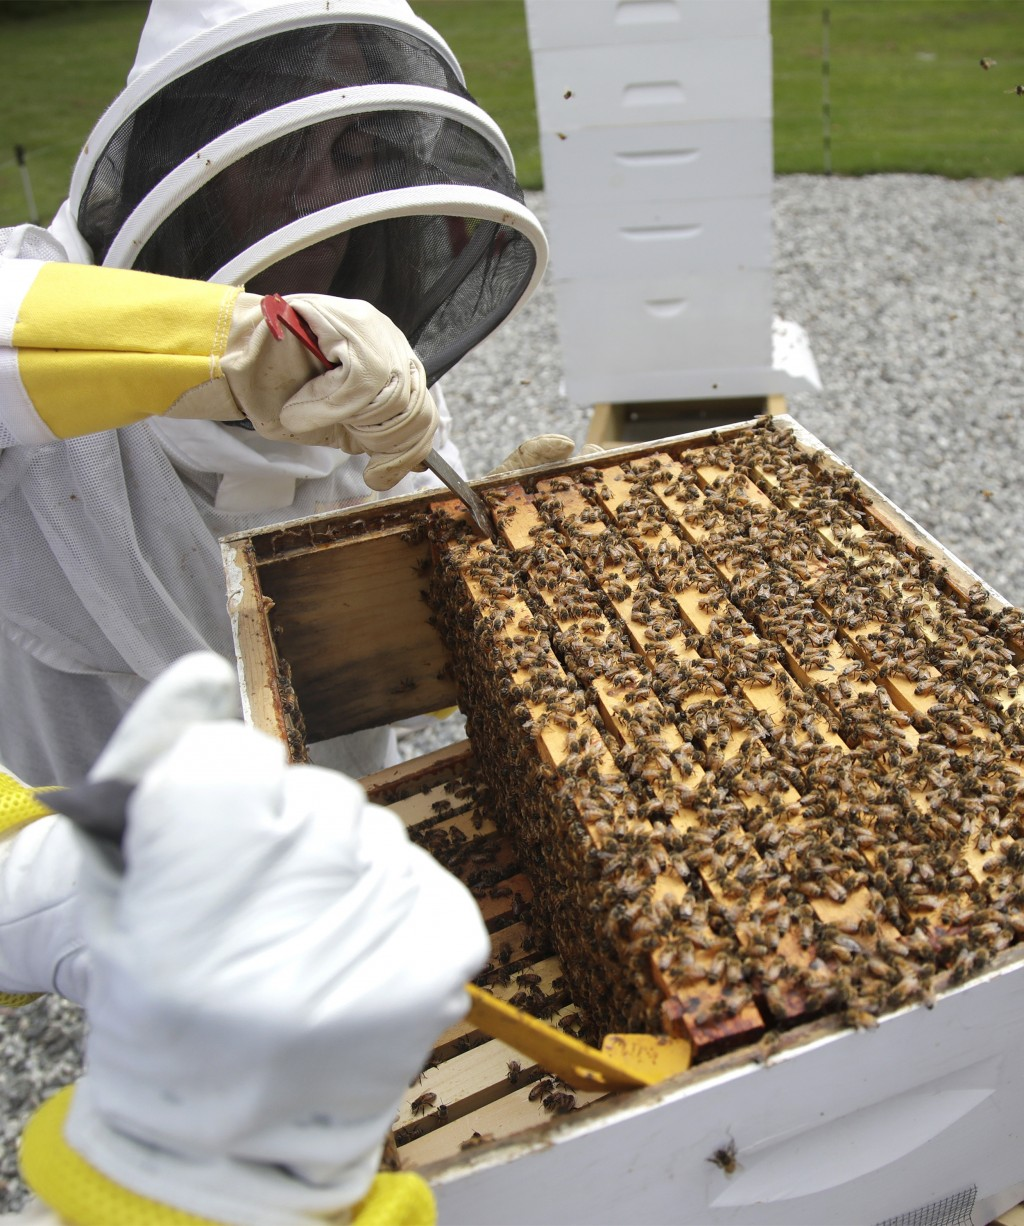 In this Aug. 7, 2019 photo, U.S. Army veteran Wendi Zimmermann uses a tool to slide up a frame of bees to check them for disease and food supply at th...